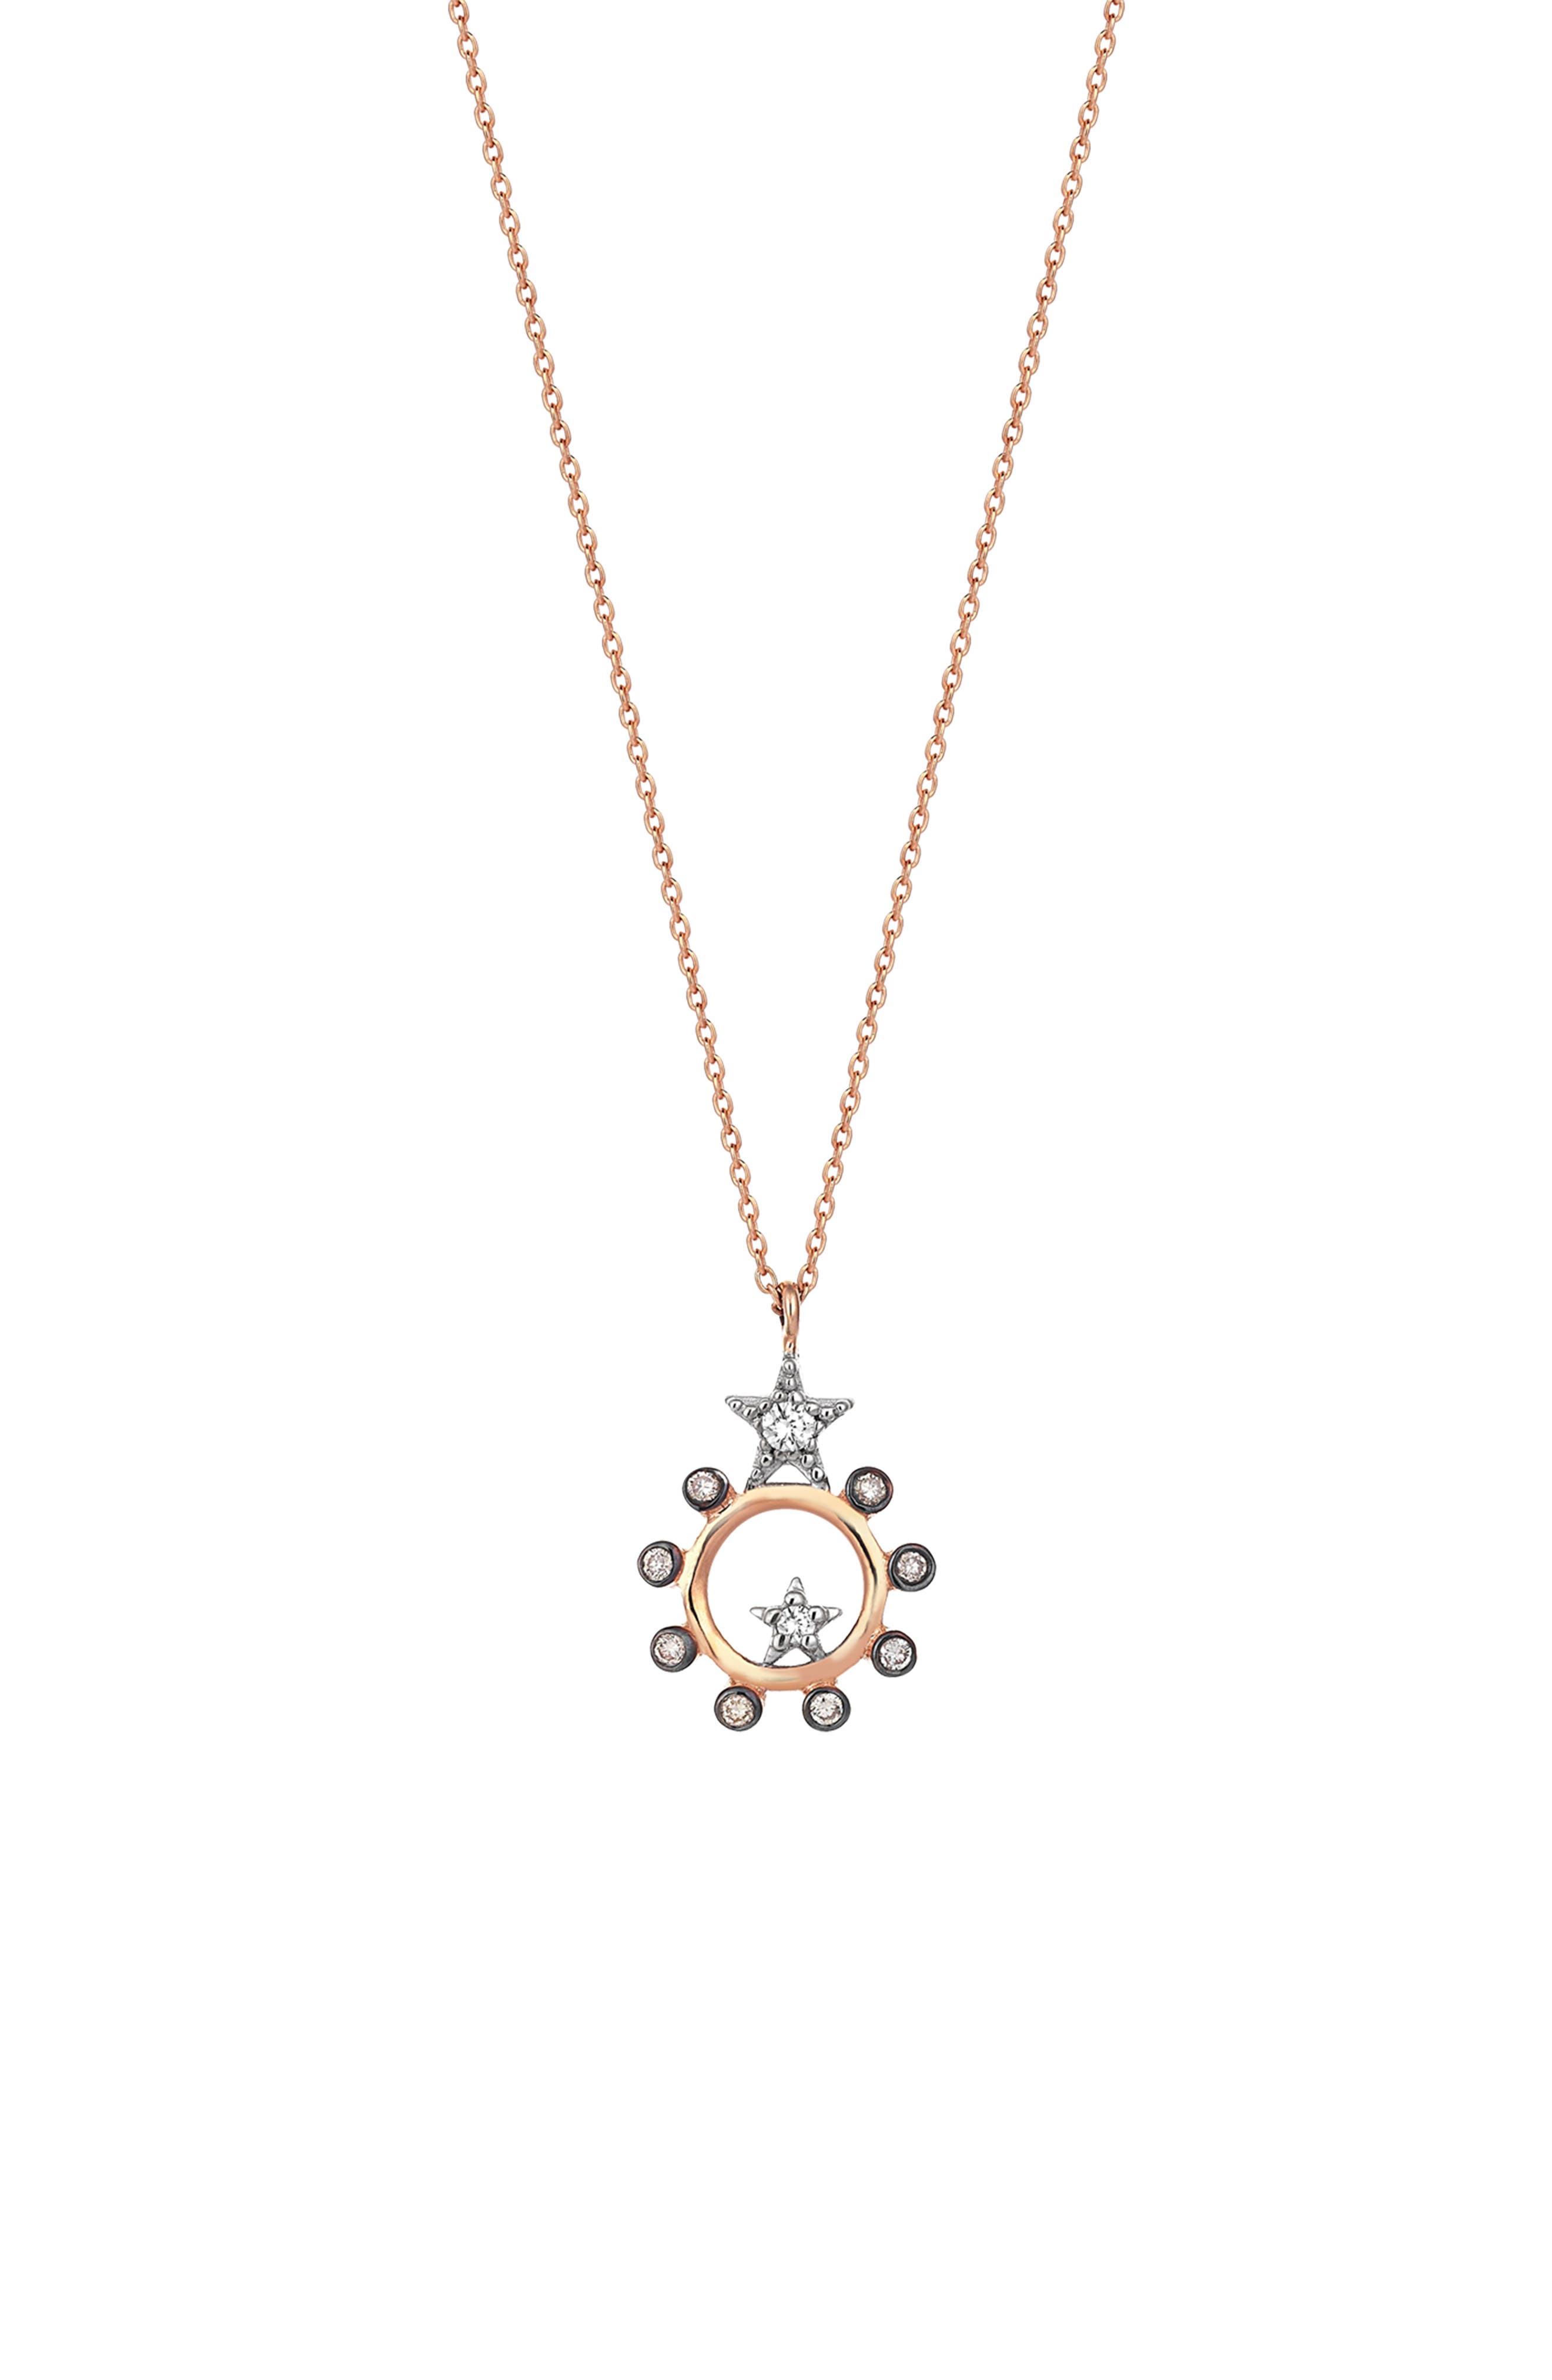 Main Image - Kismet by Milka Eclectic Diamond Star Pendant Necklace